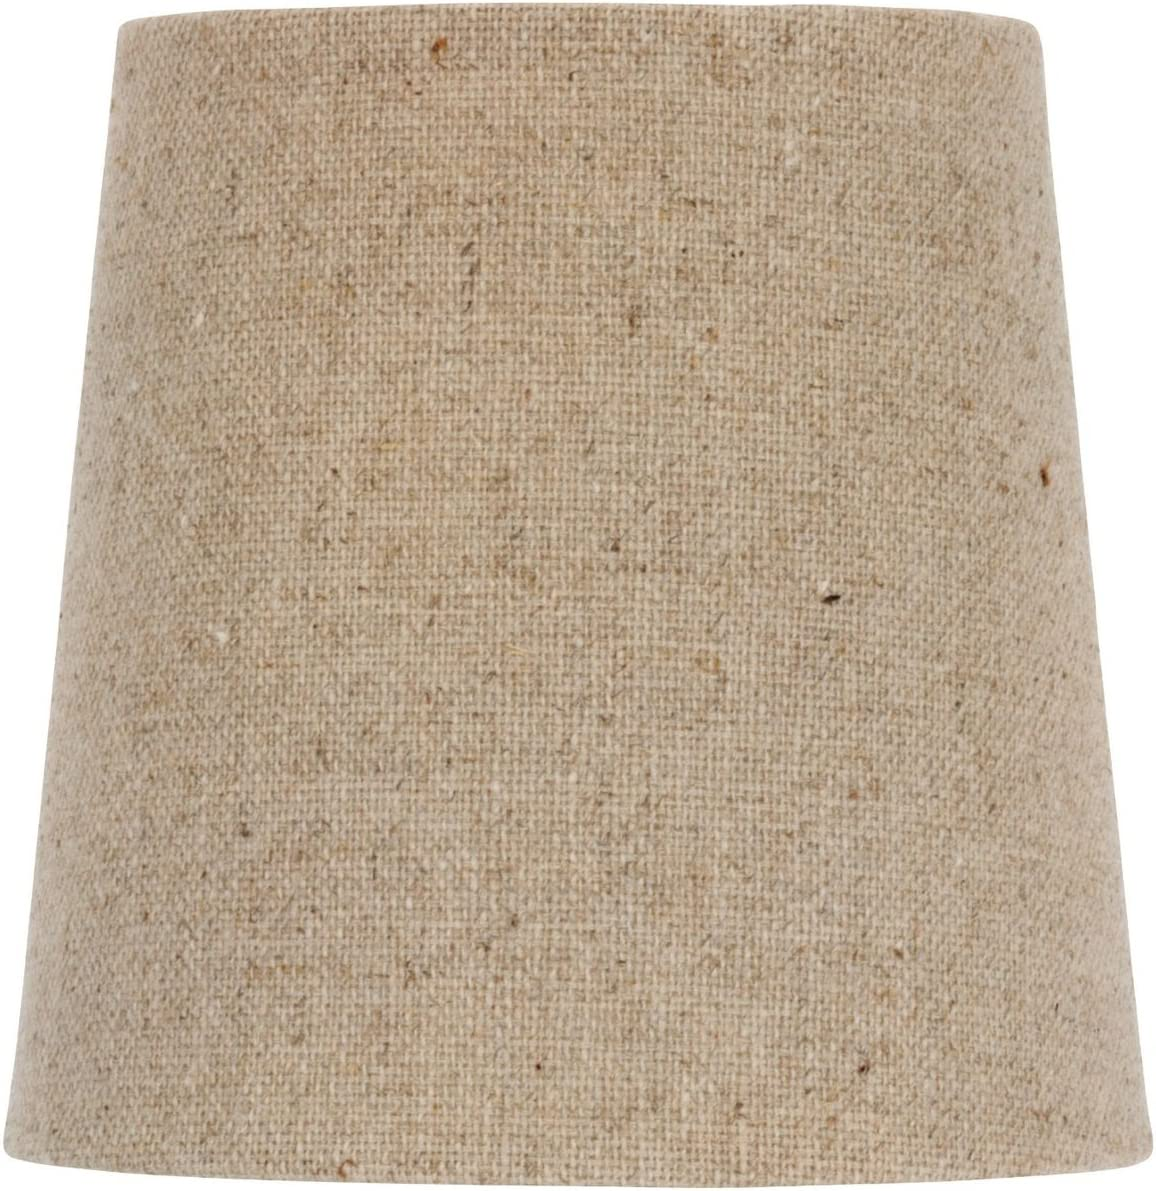 5 Inch European Drum Style Chandelier Lamp Shade Mini Shade Natural Belgium Linen Pack of 6